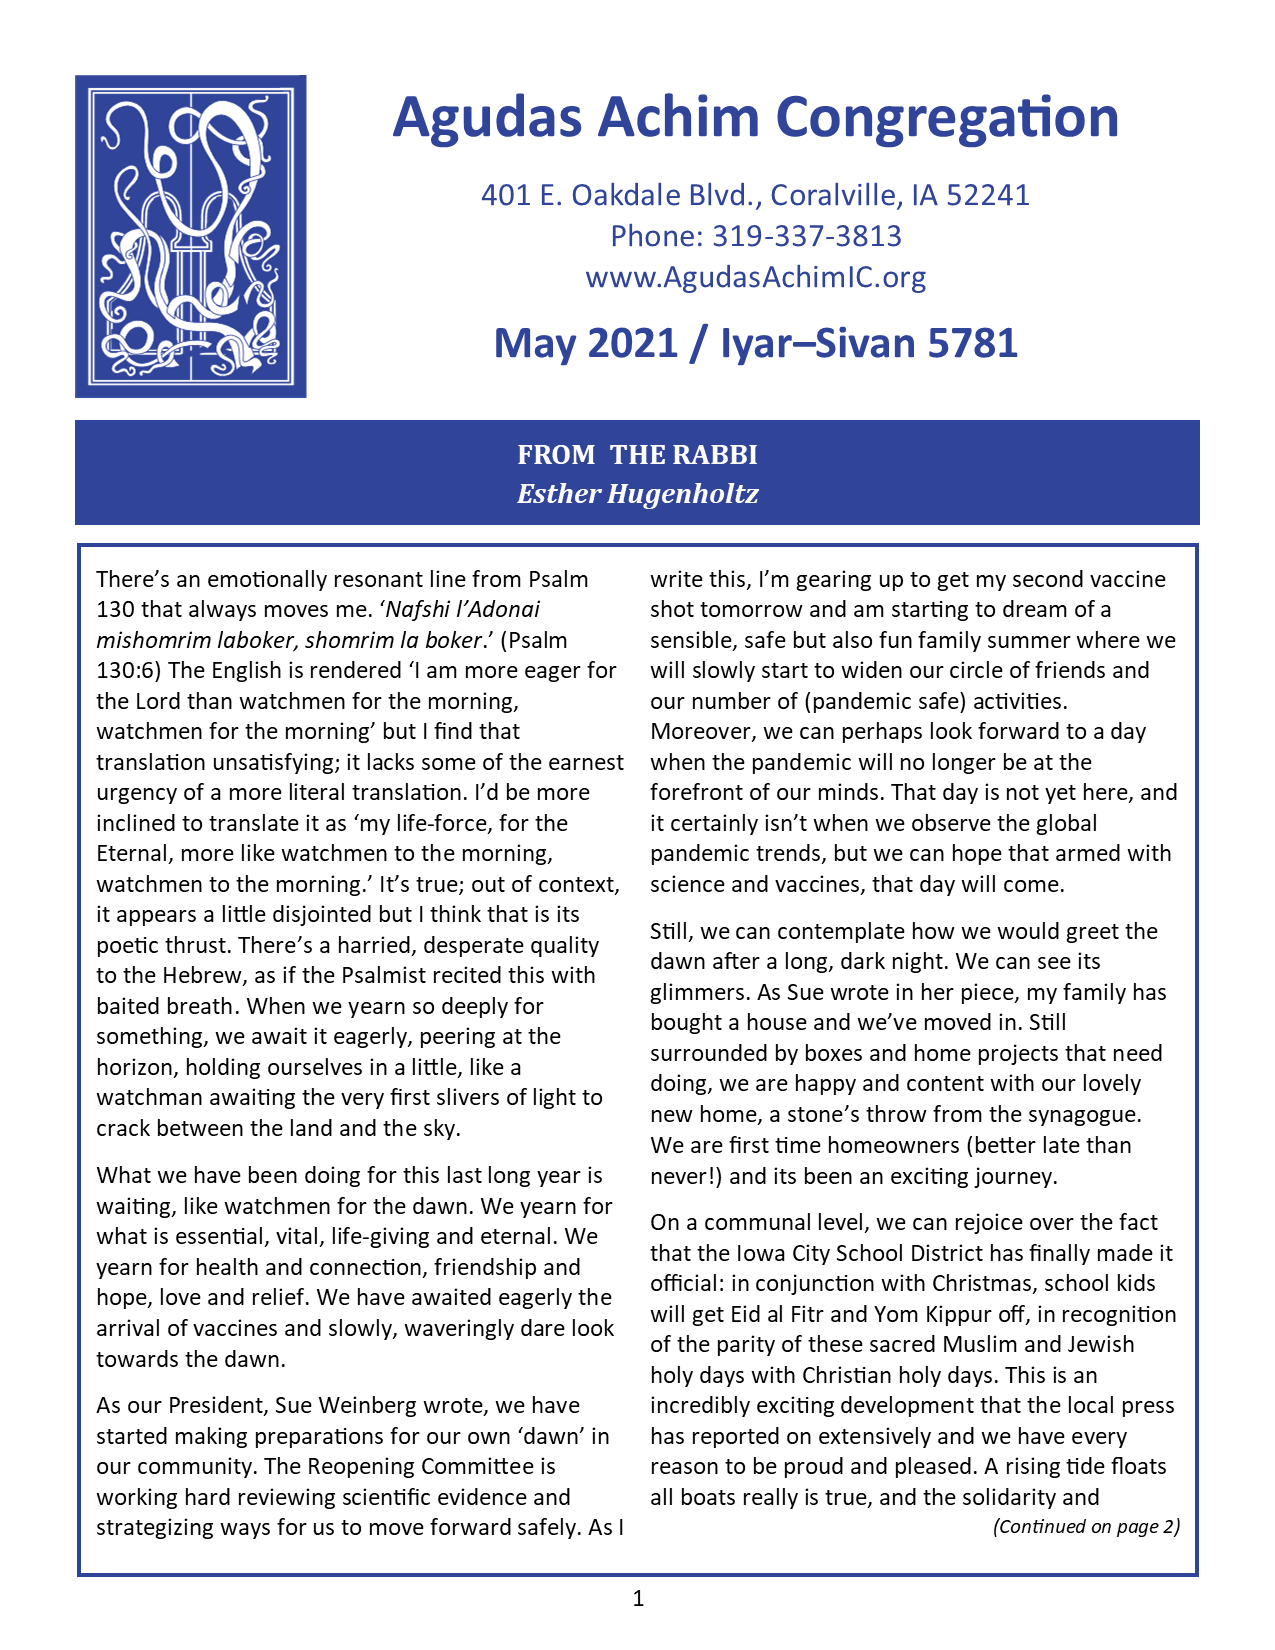 May 2021 Bulletin Cover